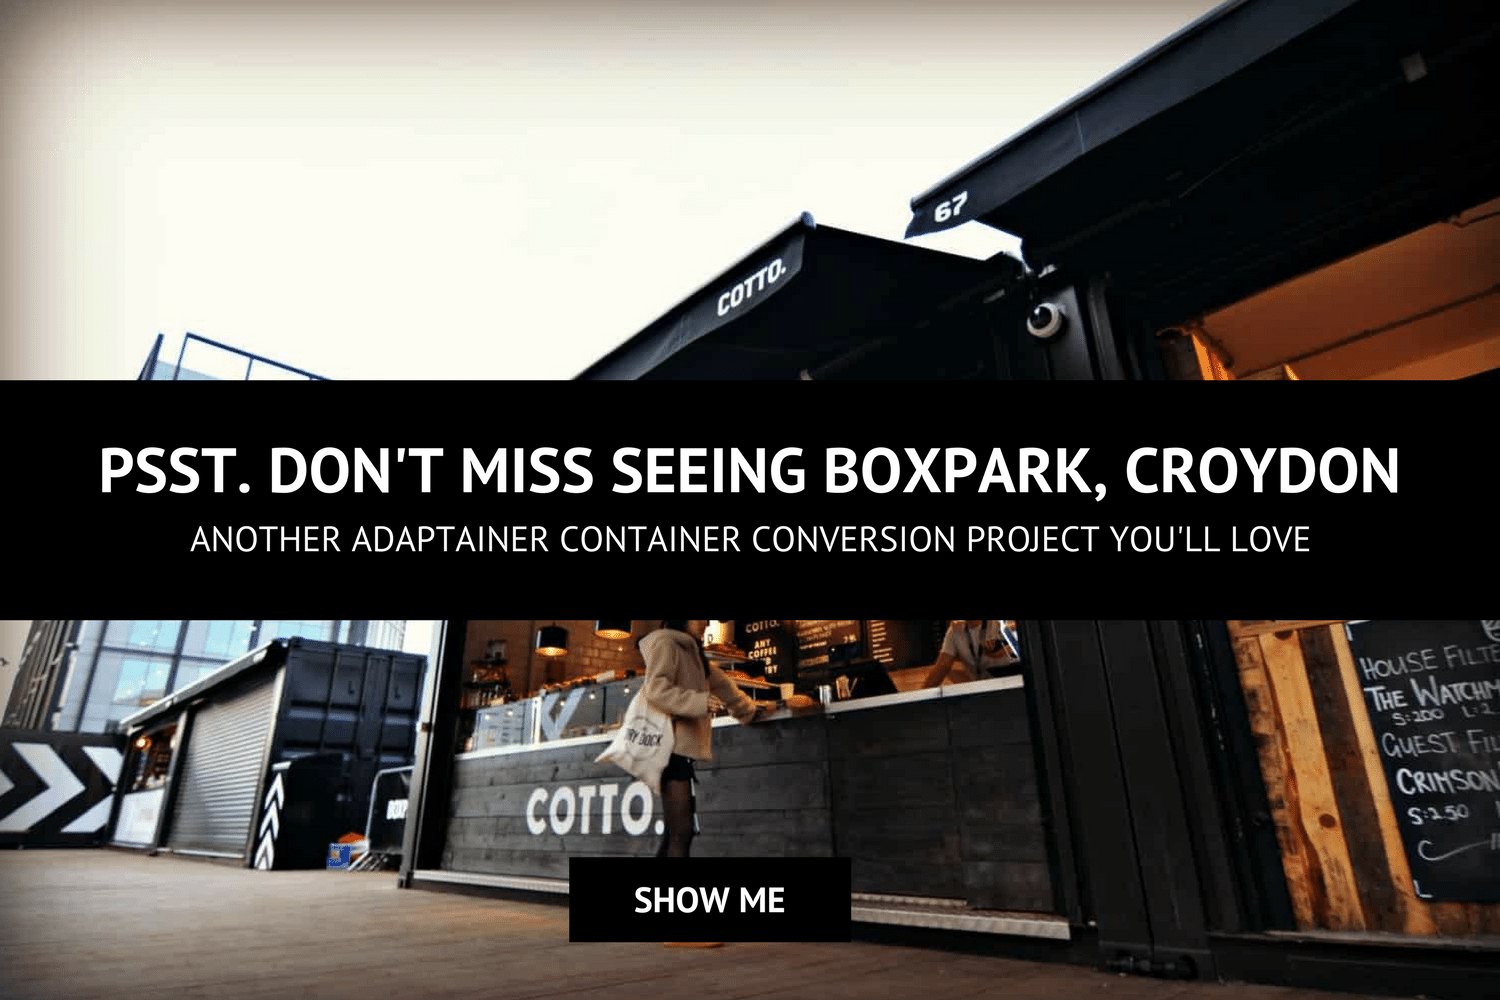 BoxPark mall Croydon container conversion